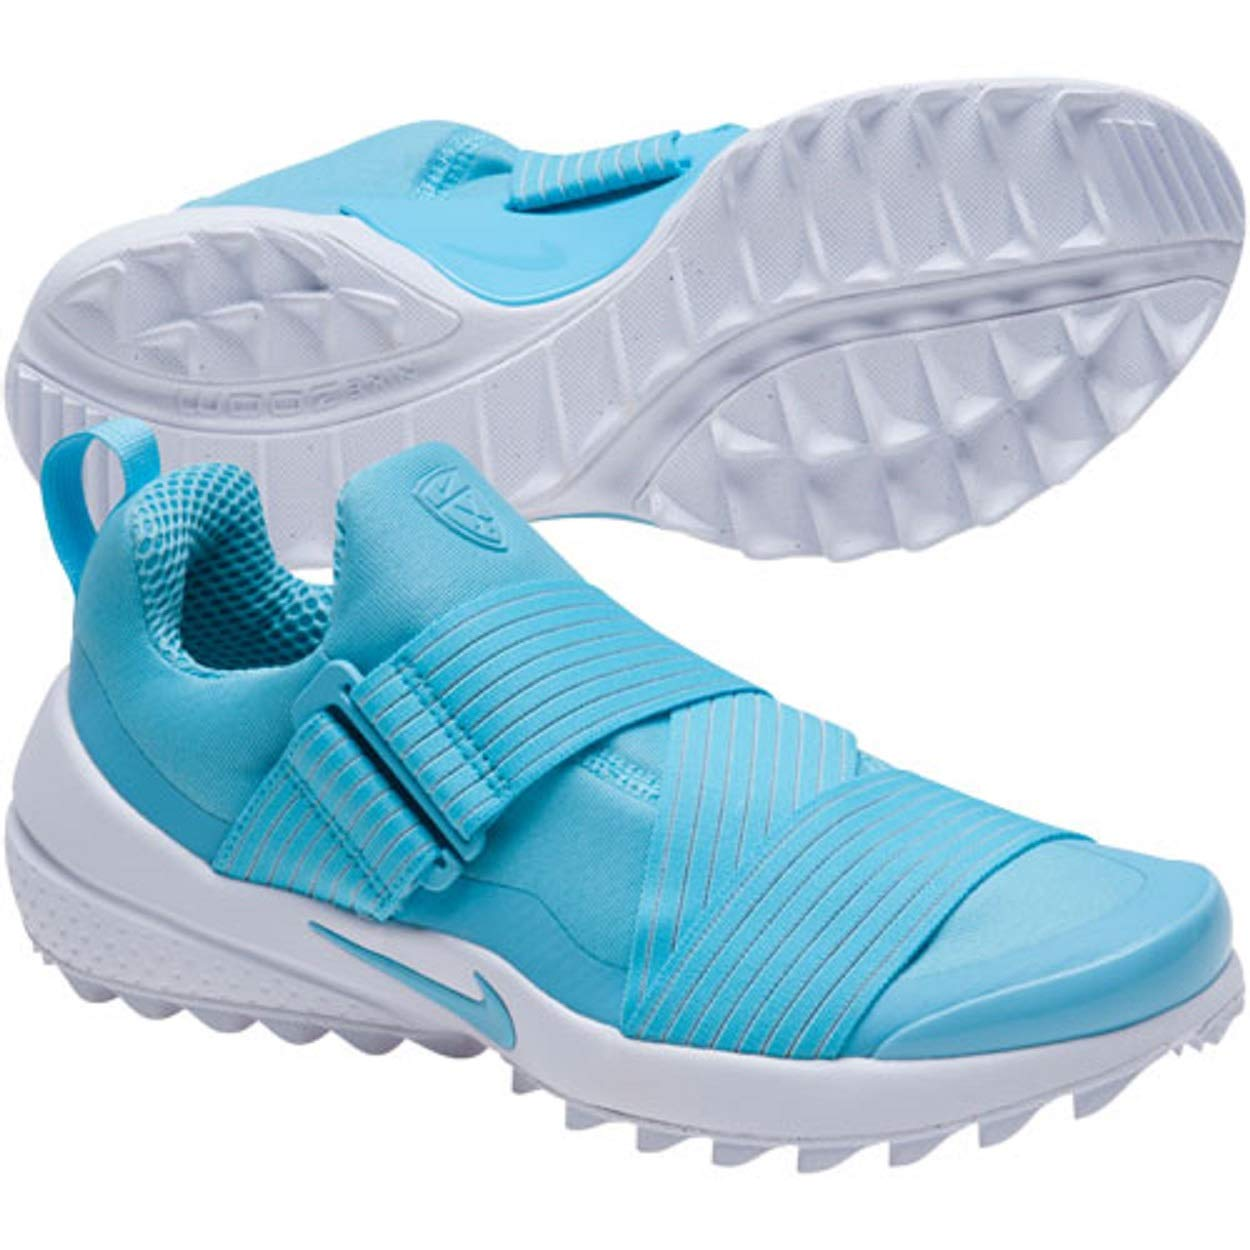 best sneakers 59d92 15532 Amazon.com  Nike Womens Air Zoom Gimme Spikeless Golf Shoes Vivid Sky  White Size 8  Golf